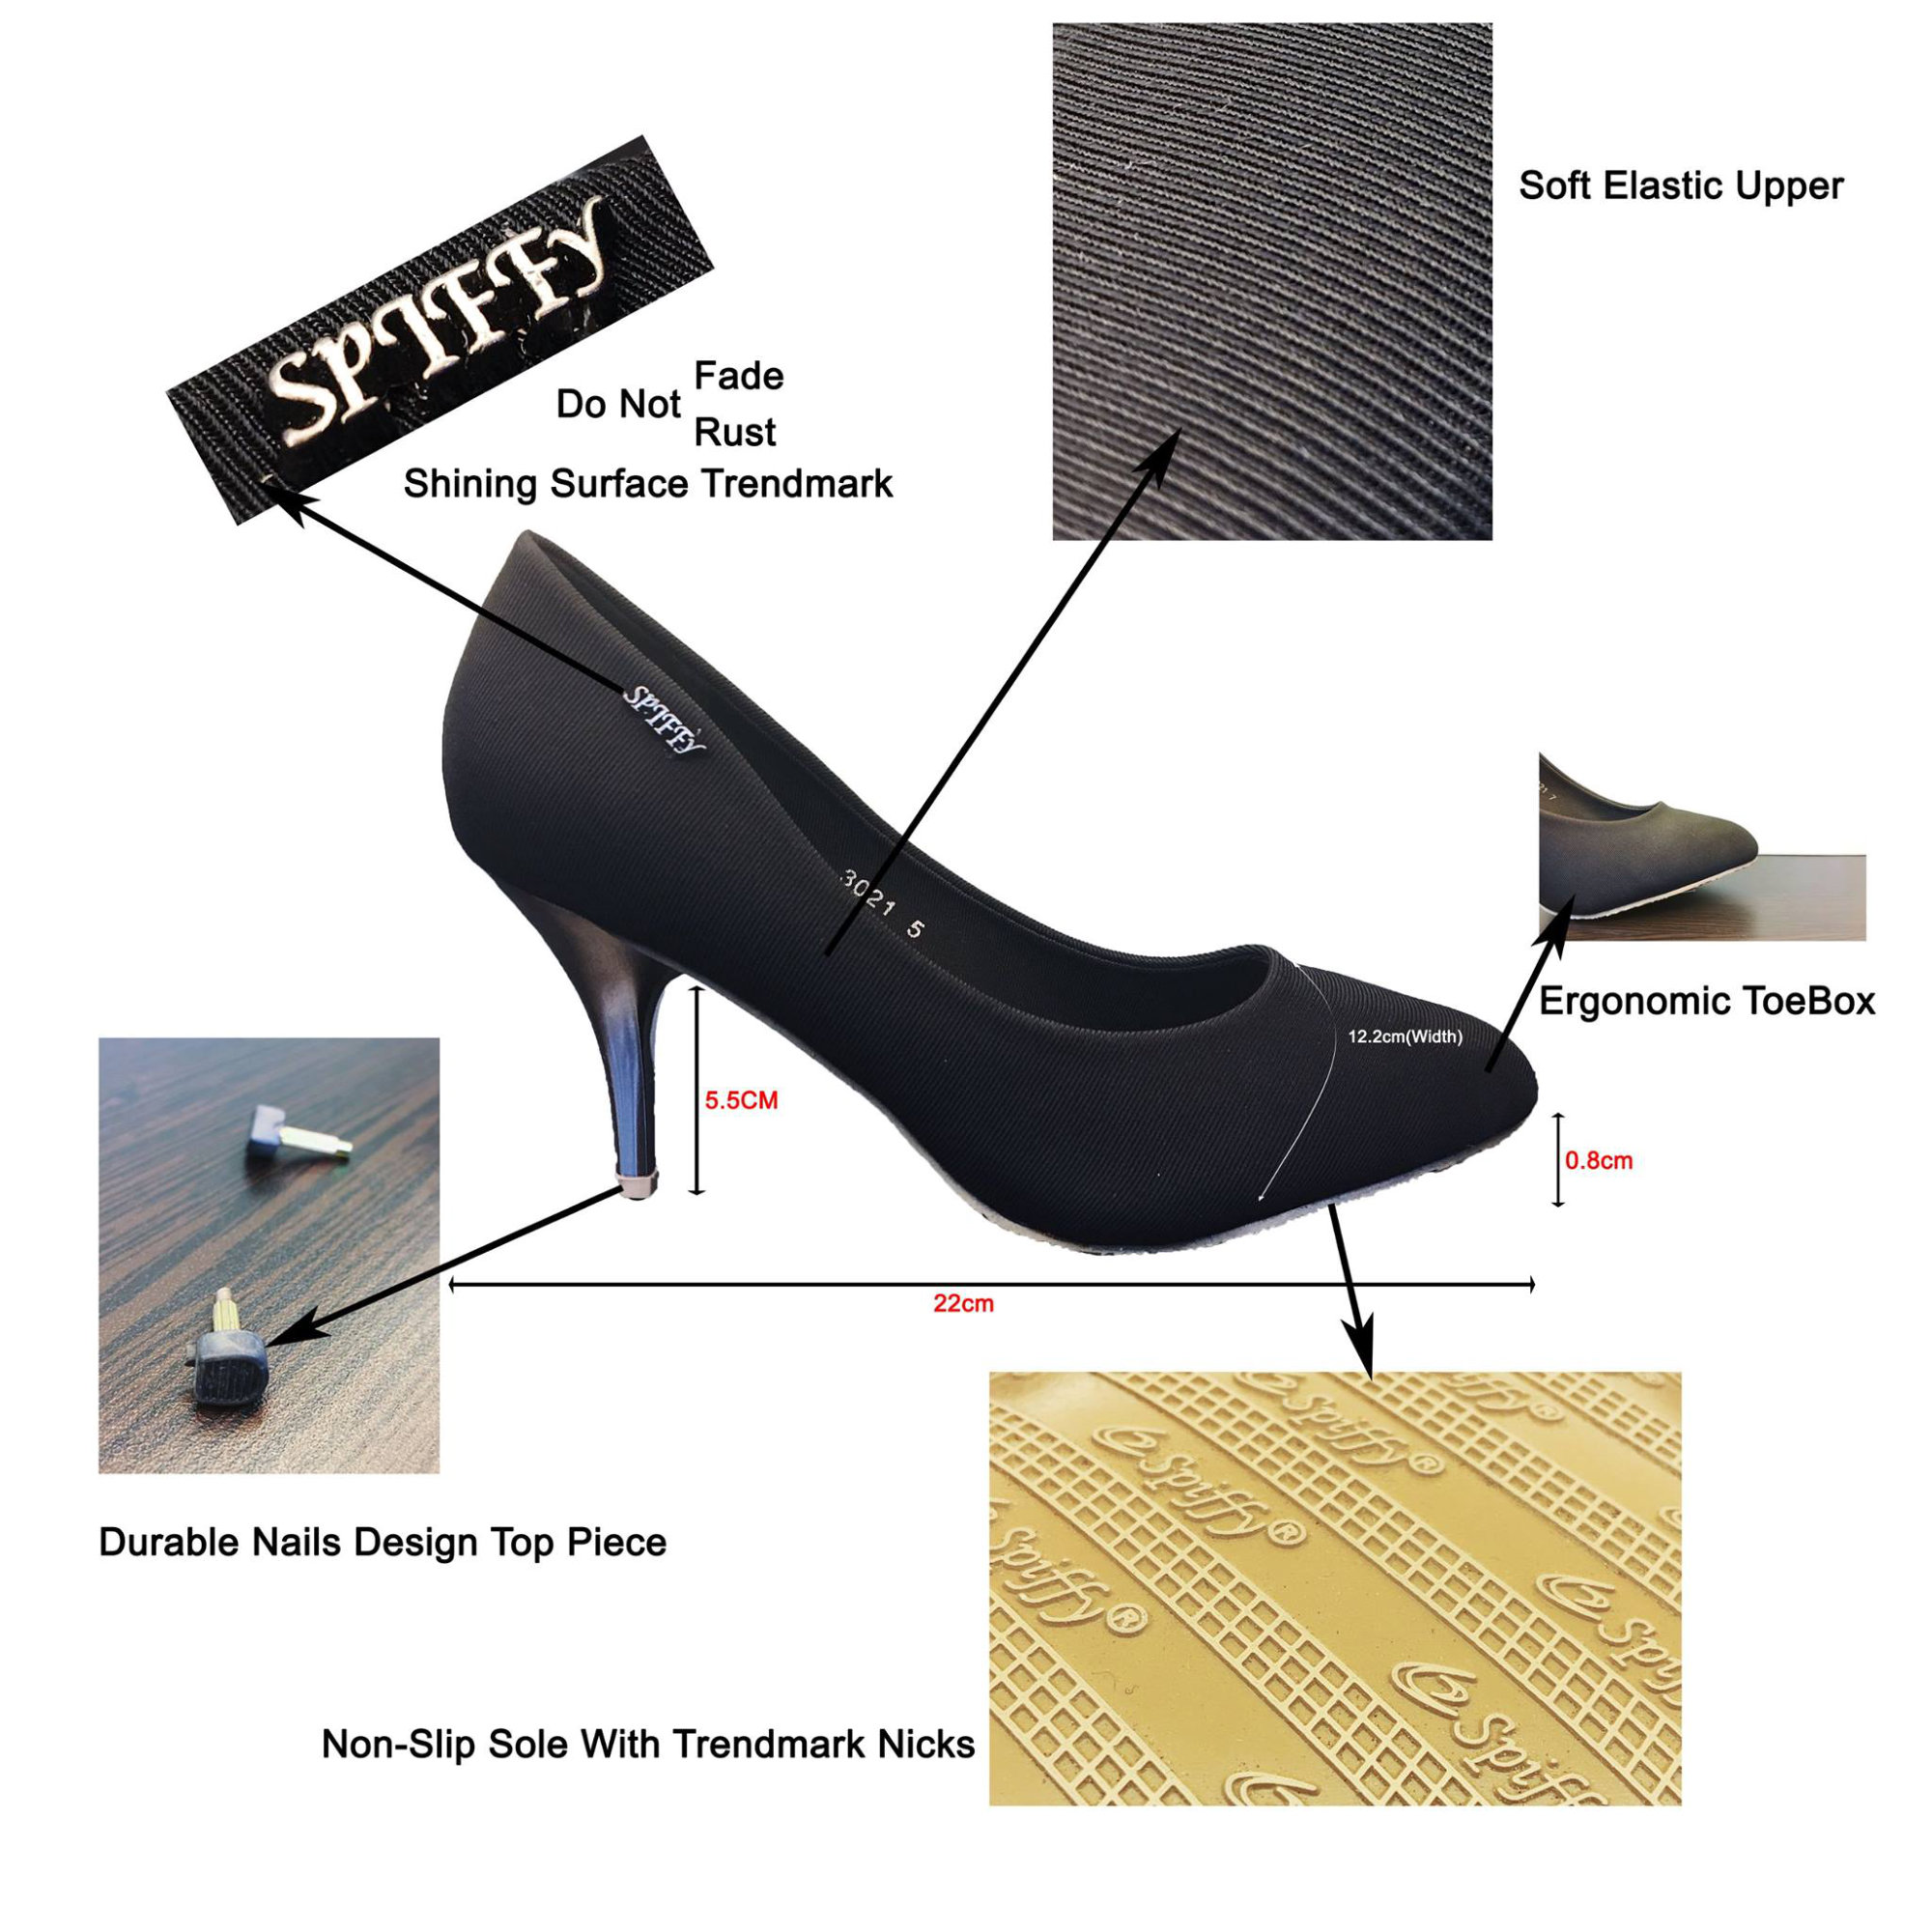 Spiffy Shoes Sales Malaysia for With You Club Members Wear This Shoes and be the Star on the night Office Wear How much do you know about our High Heels Spiffy Shoes F01.jpg